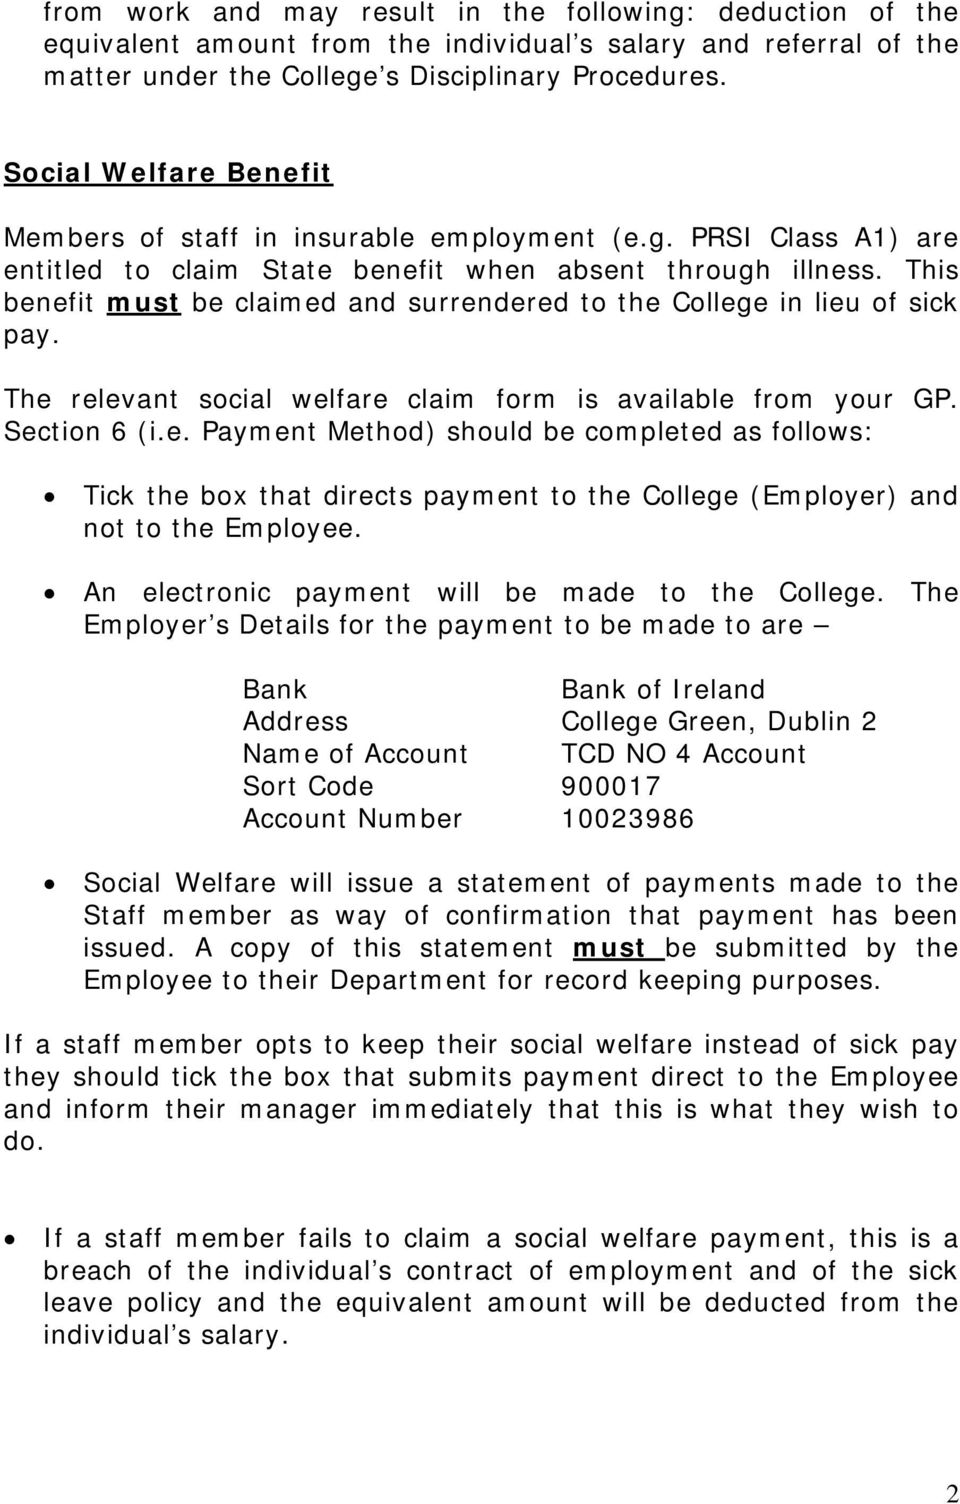 This benefit must be claimed and surrendered to the College in lieu of sick pay. The relevant social welfare claim form is available from your GP. Section 6 (i.e. Payment Method) should be completed as follows: Tick the box that directs payment to the College (Employer) and not to the Employee.